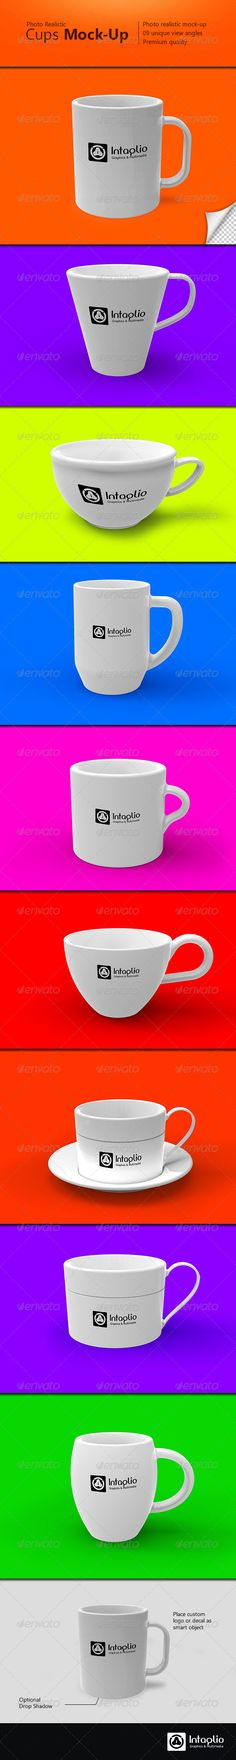 Photorealistic Cups MockUp — Photoshop PSD #coffee #simple • Available here → https://graphicriver.net/item/photorealistic-cups-mockup/2734116?ref=pxcr